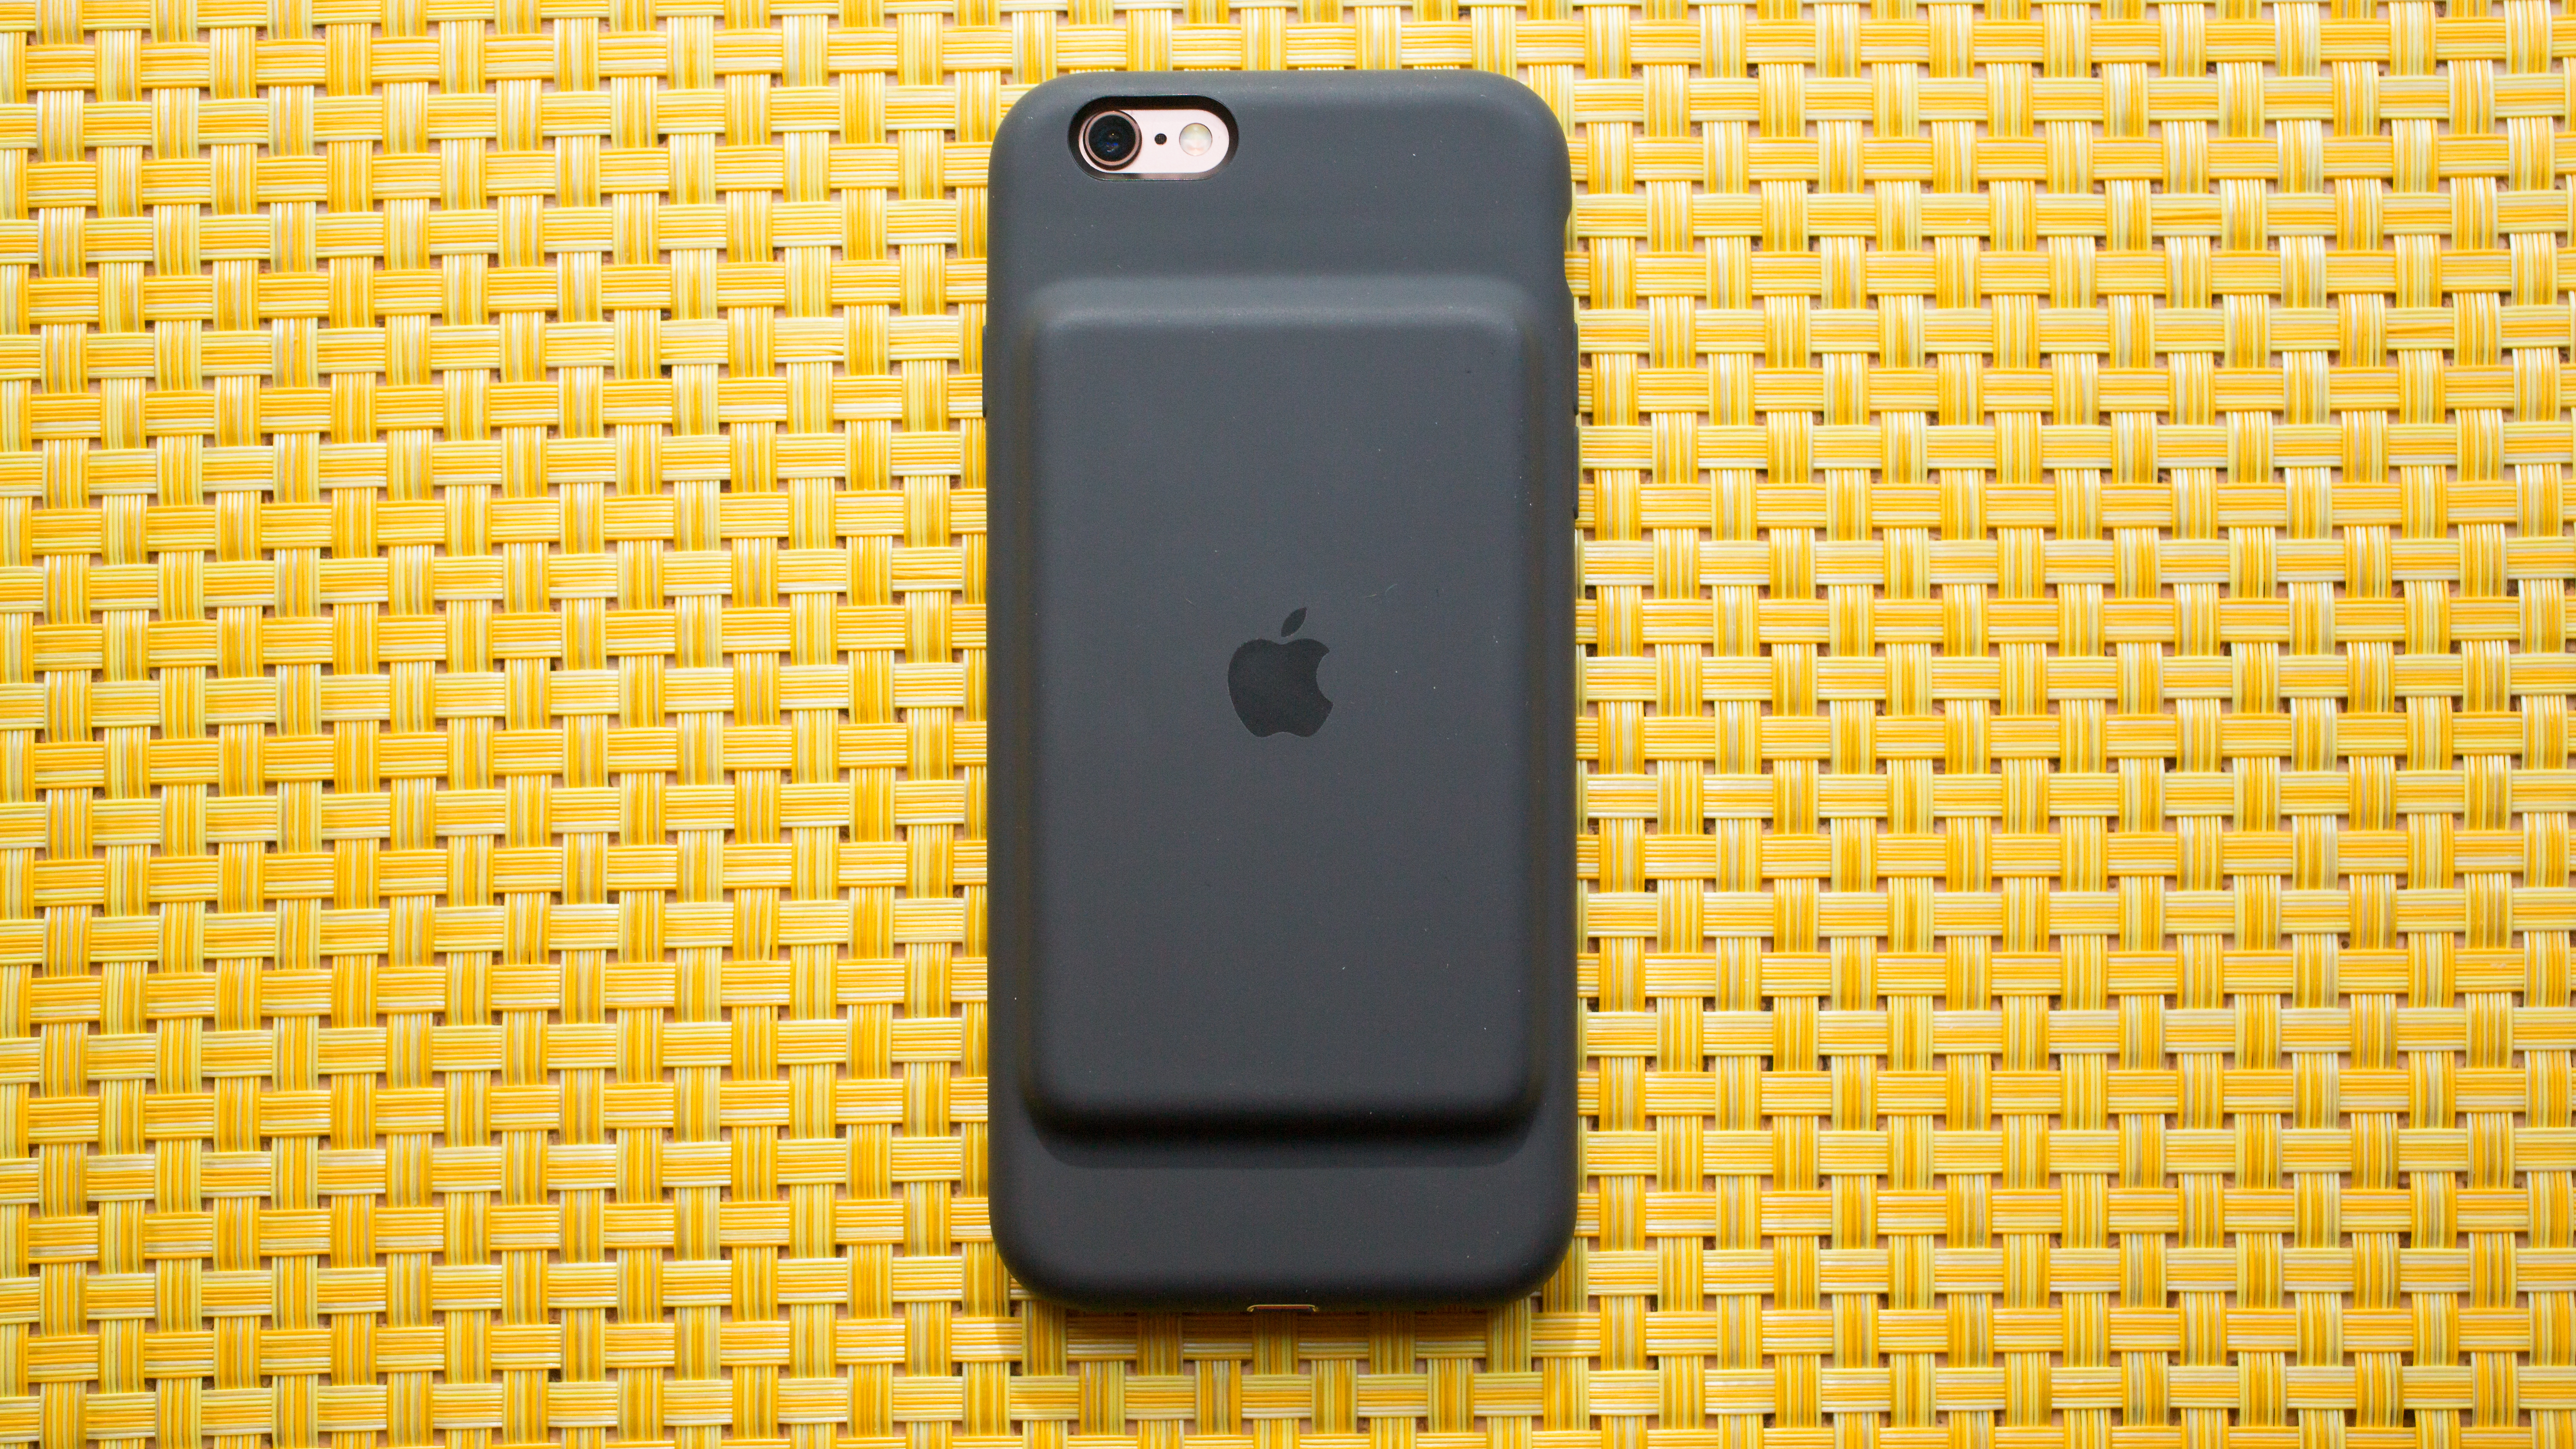 apple-smart-battery-case-for-iphone-6-and-6s-02.jpg